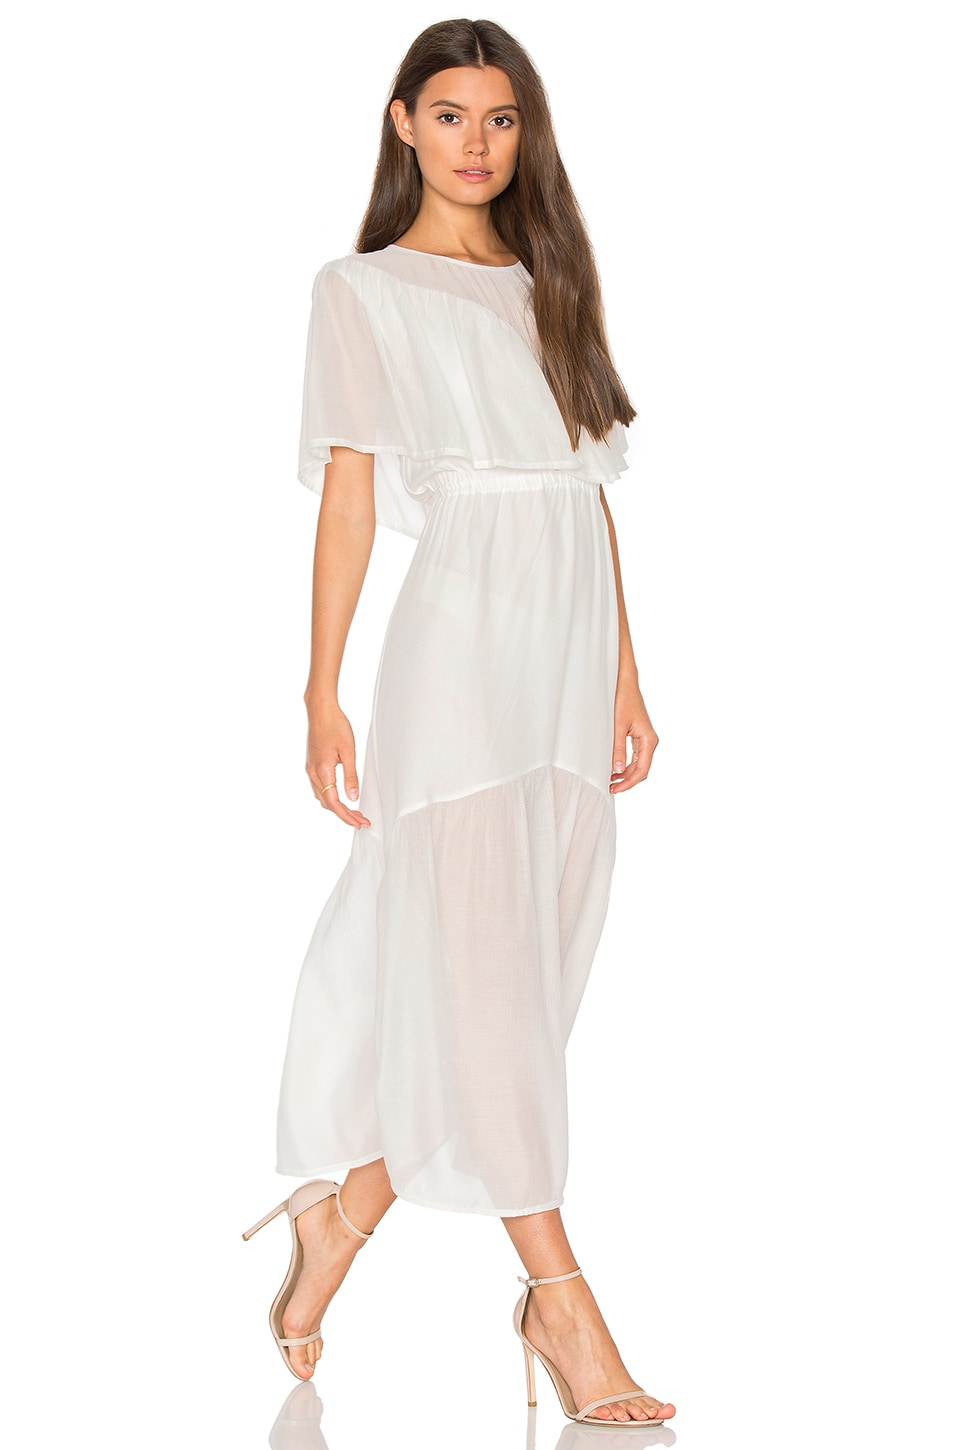 Shaee Cape Maxi Dress by Steele